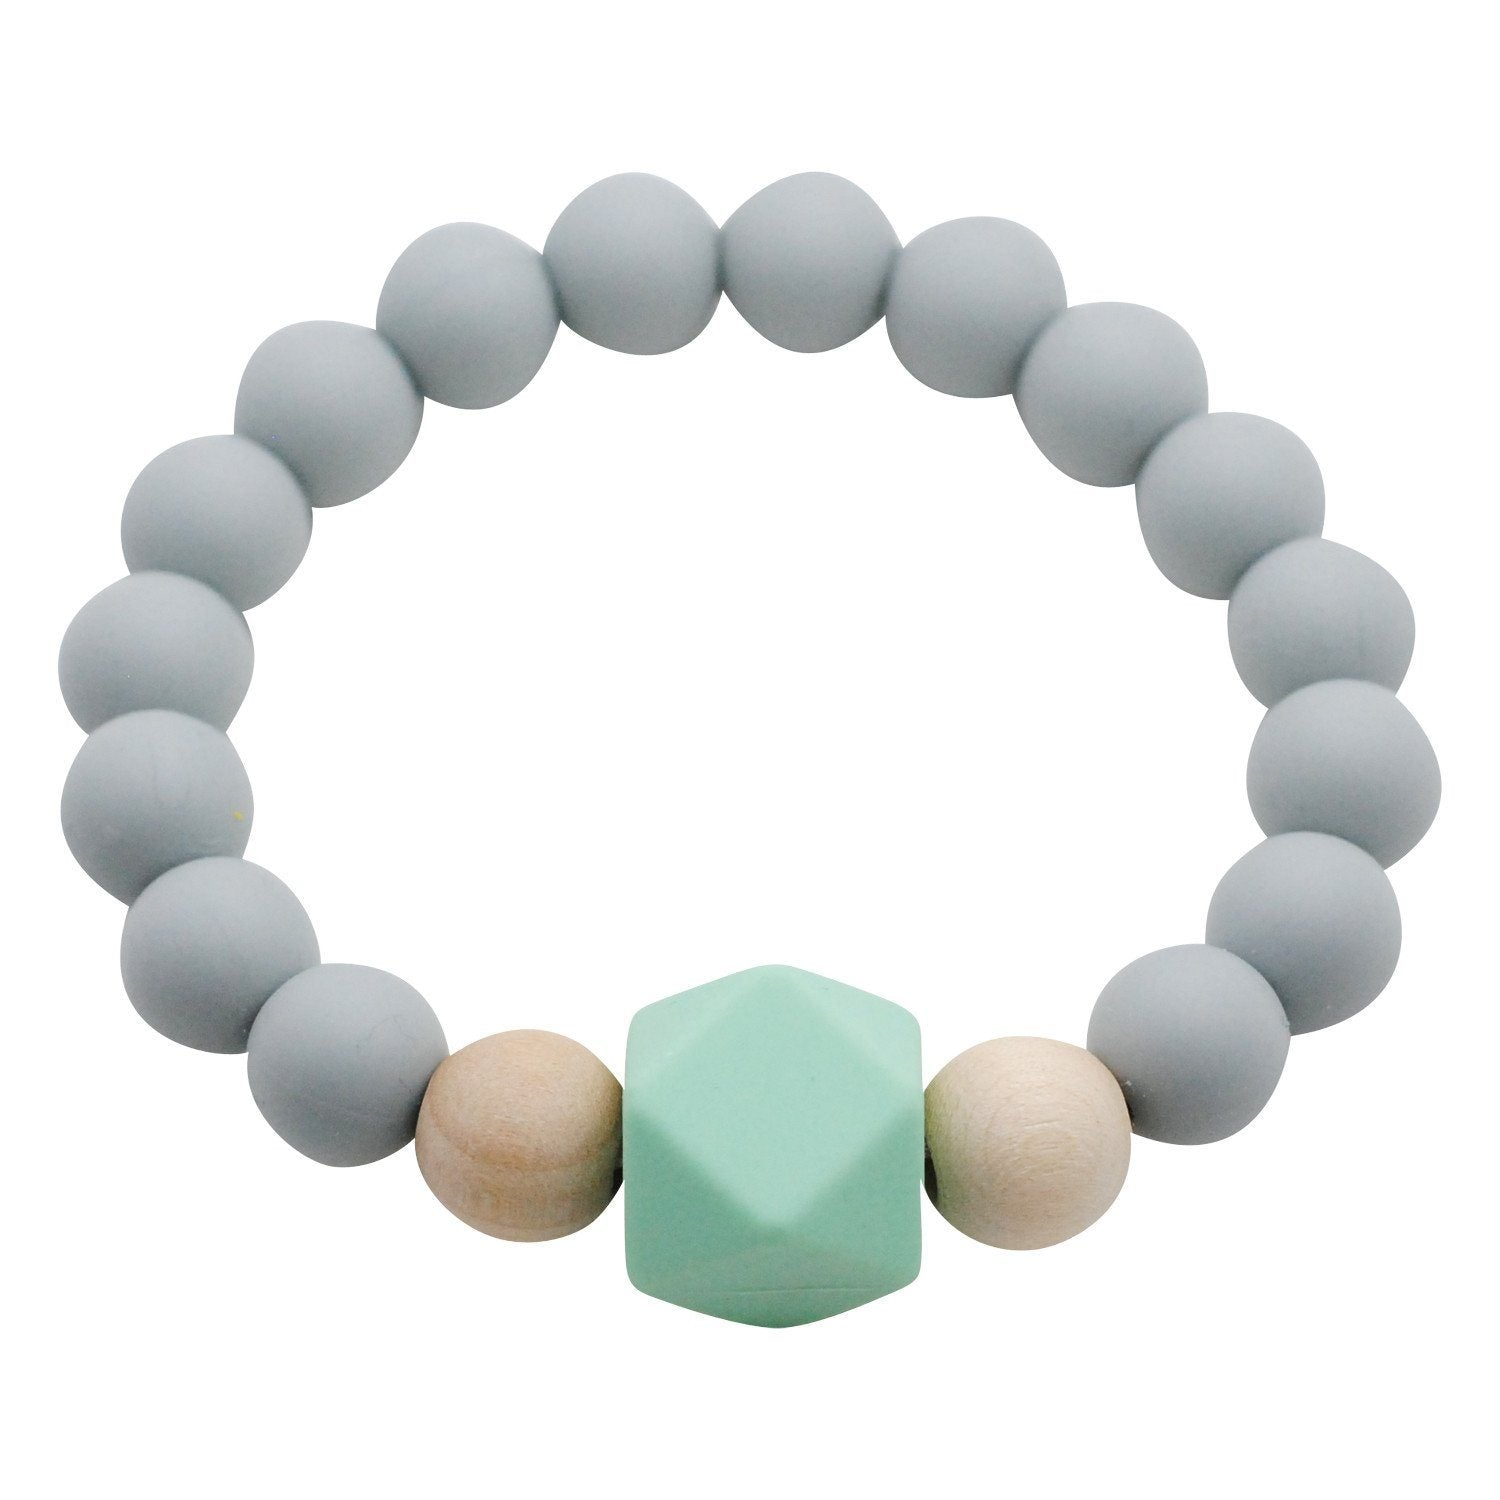 Adult Silicone Teething Bracelet - Gemstone in Feather Gray - Glitter & Spice